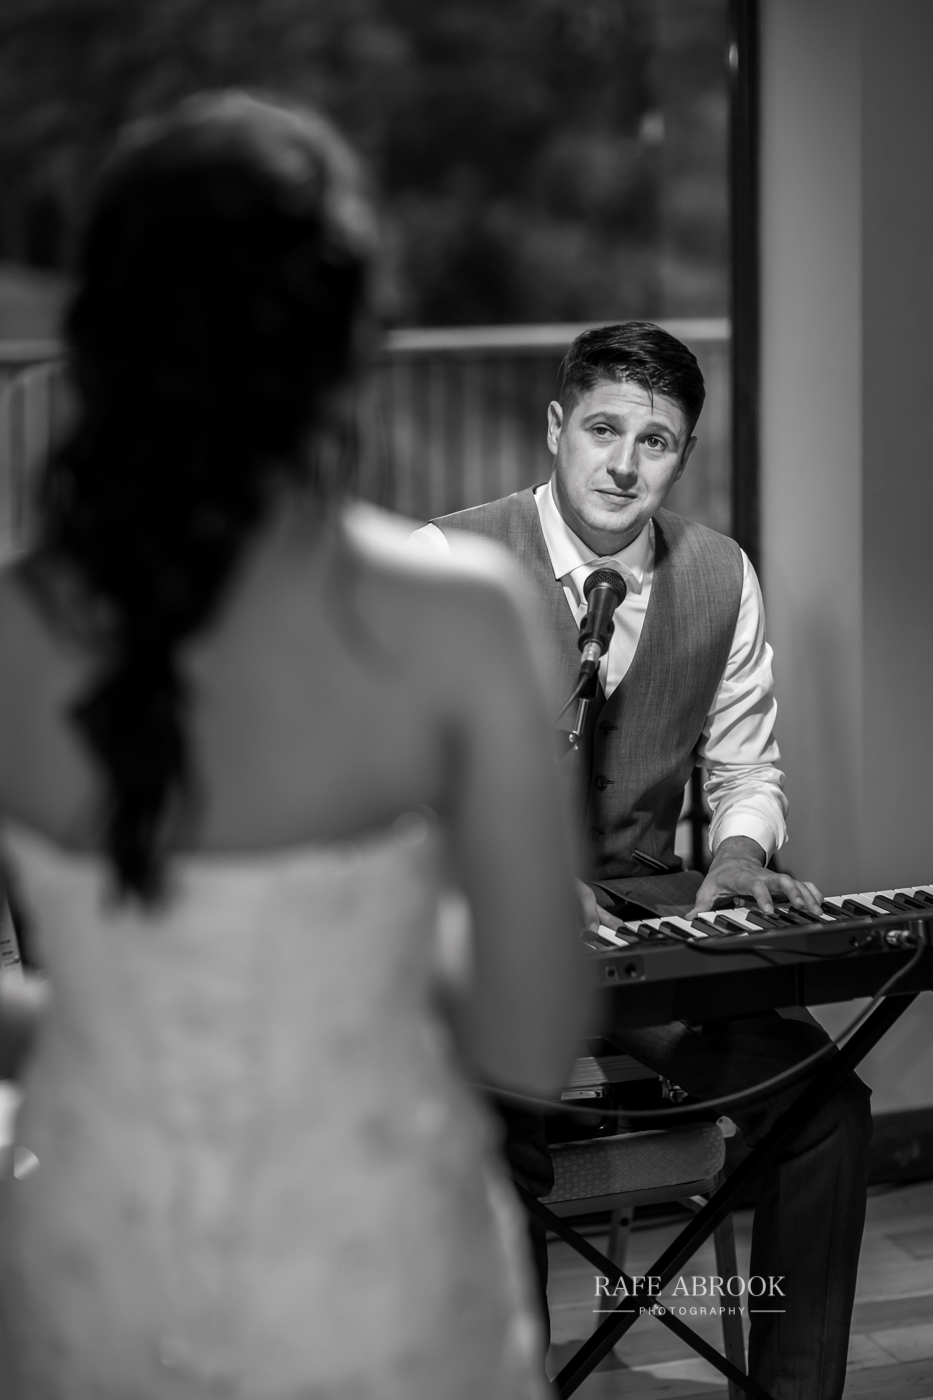 fishermans retreat ramsbottom lancashire bury hertfordshire wedding photographer-1465.jpg